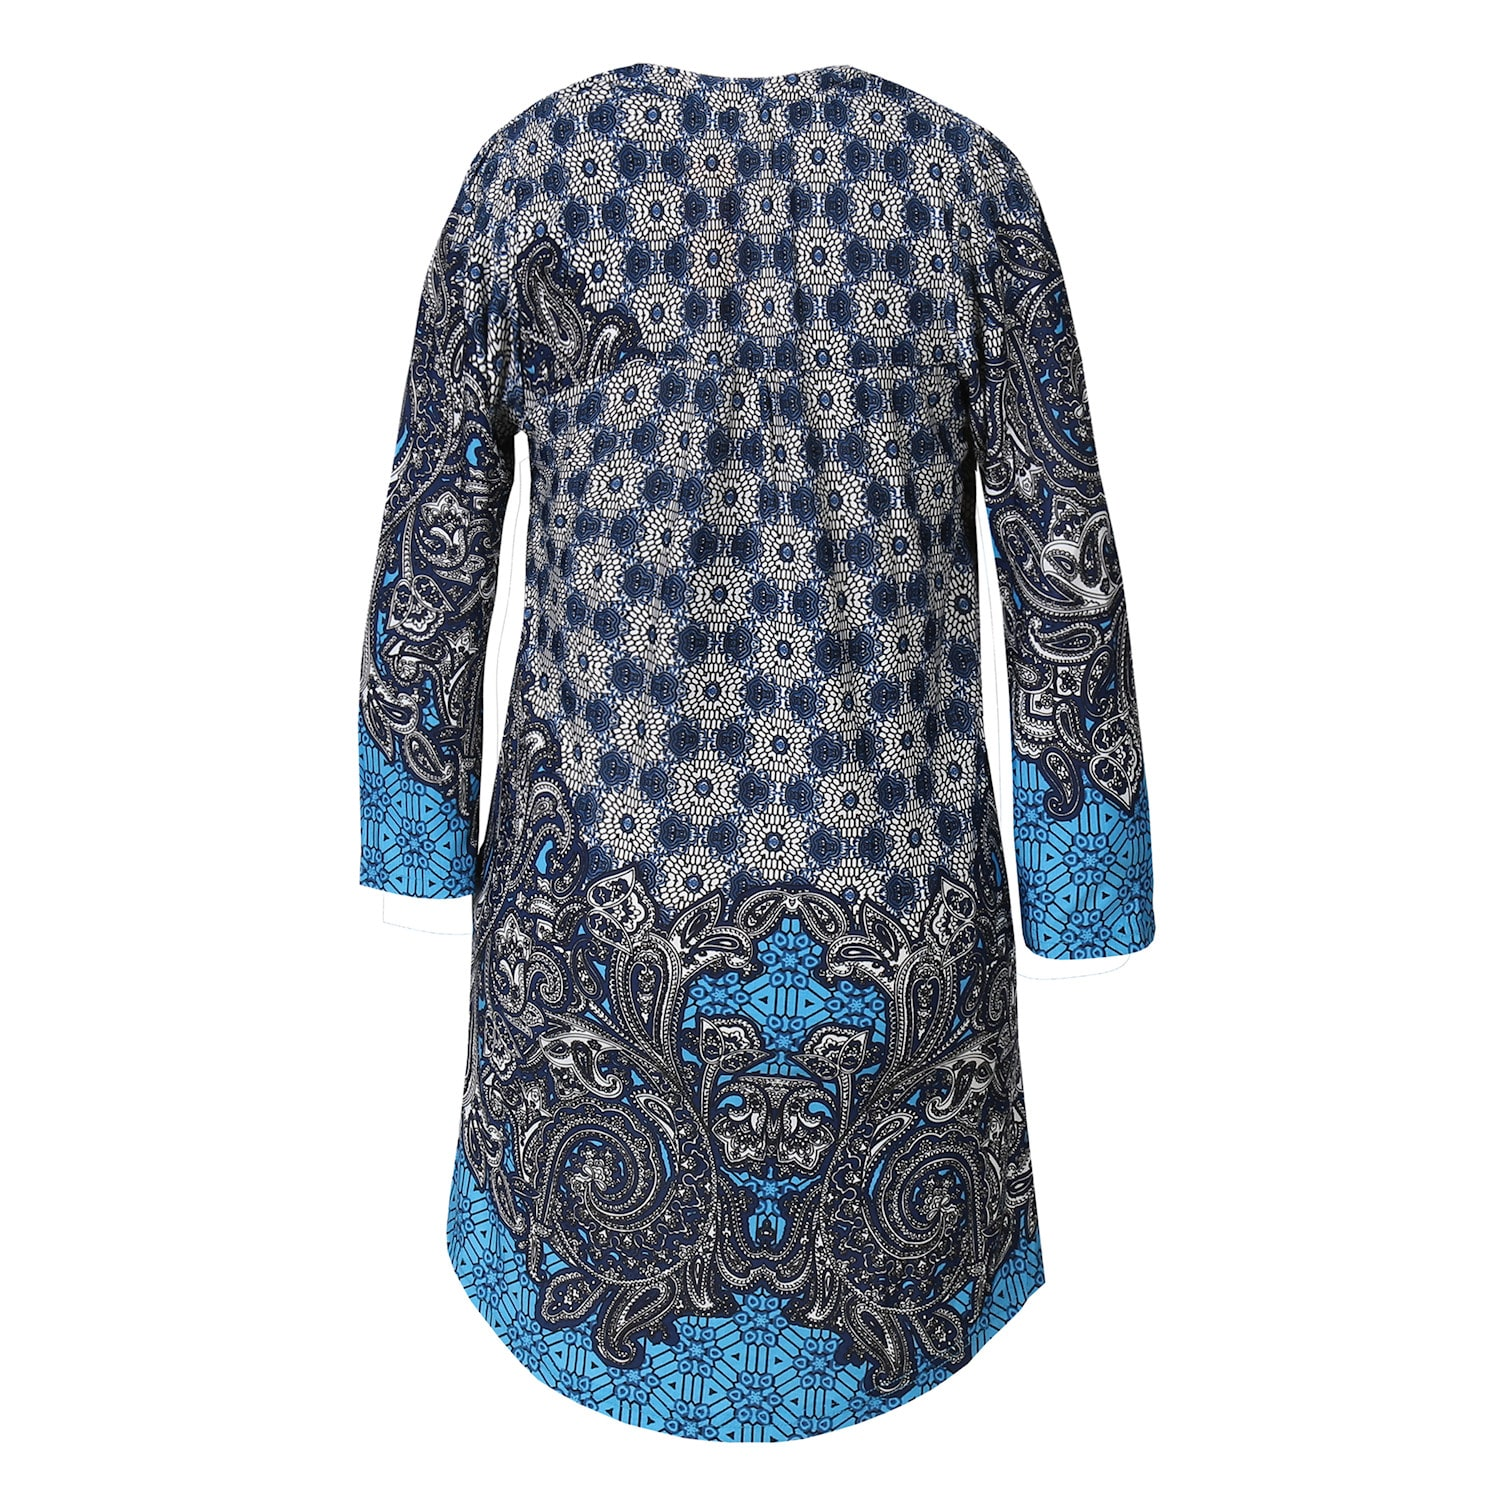 Women-039-s-Pleated-Paisley-Tunic-Top-3-4-Sleeve-Blouse-Ivory-Red-Turquoise-Navy thumbnail 11